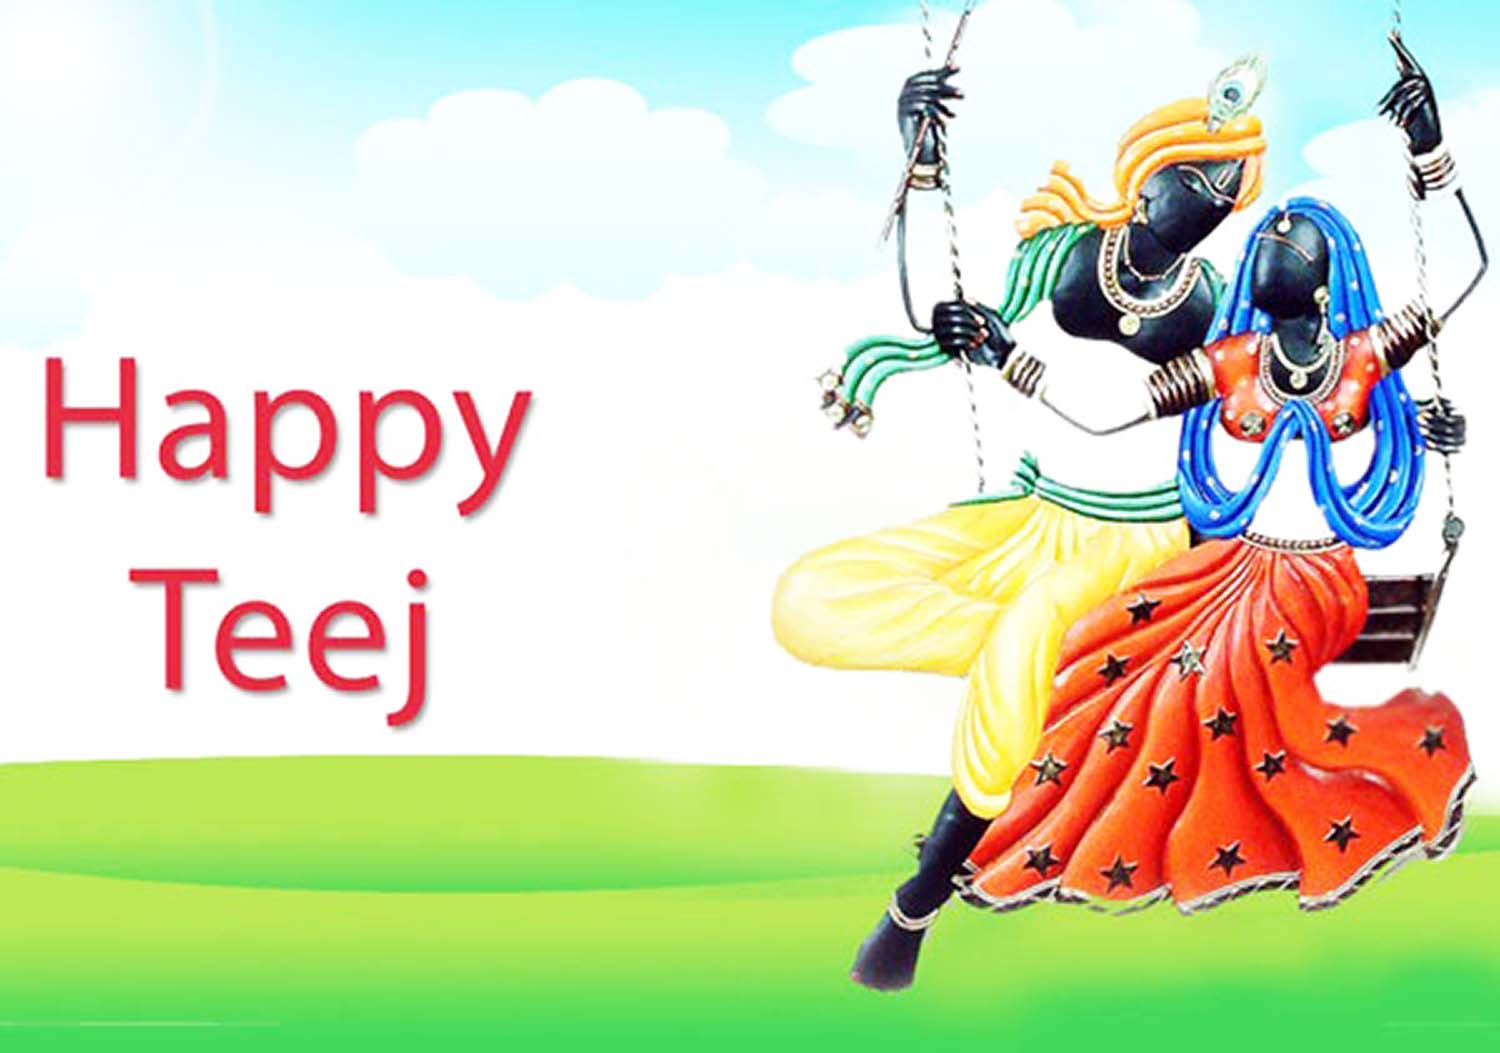 teej images free download